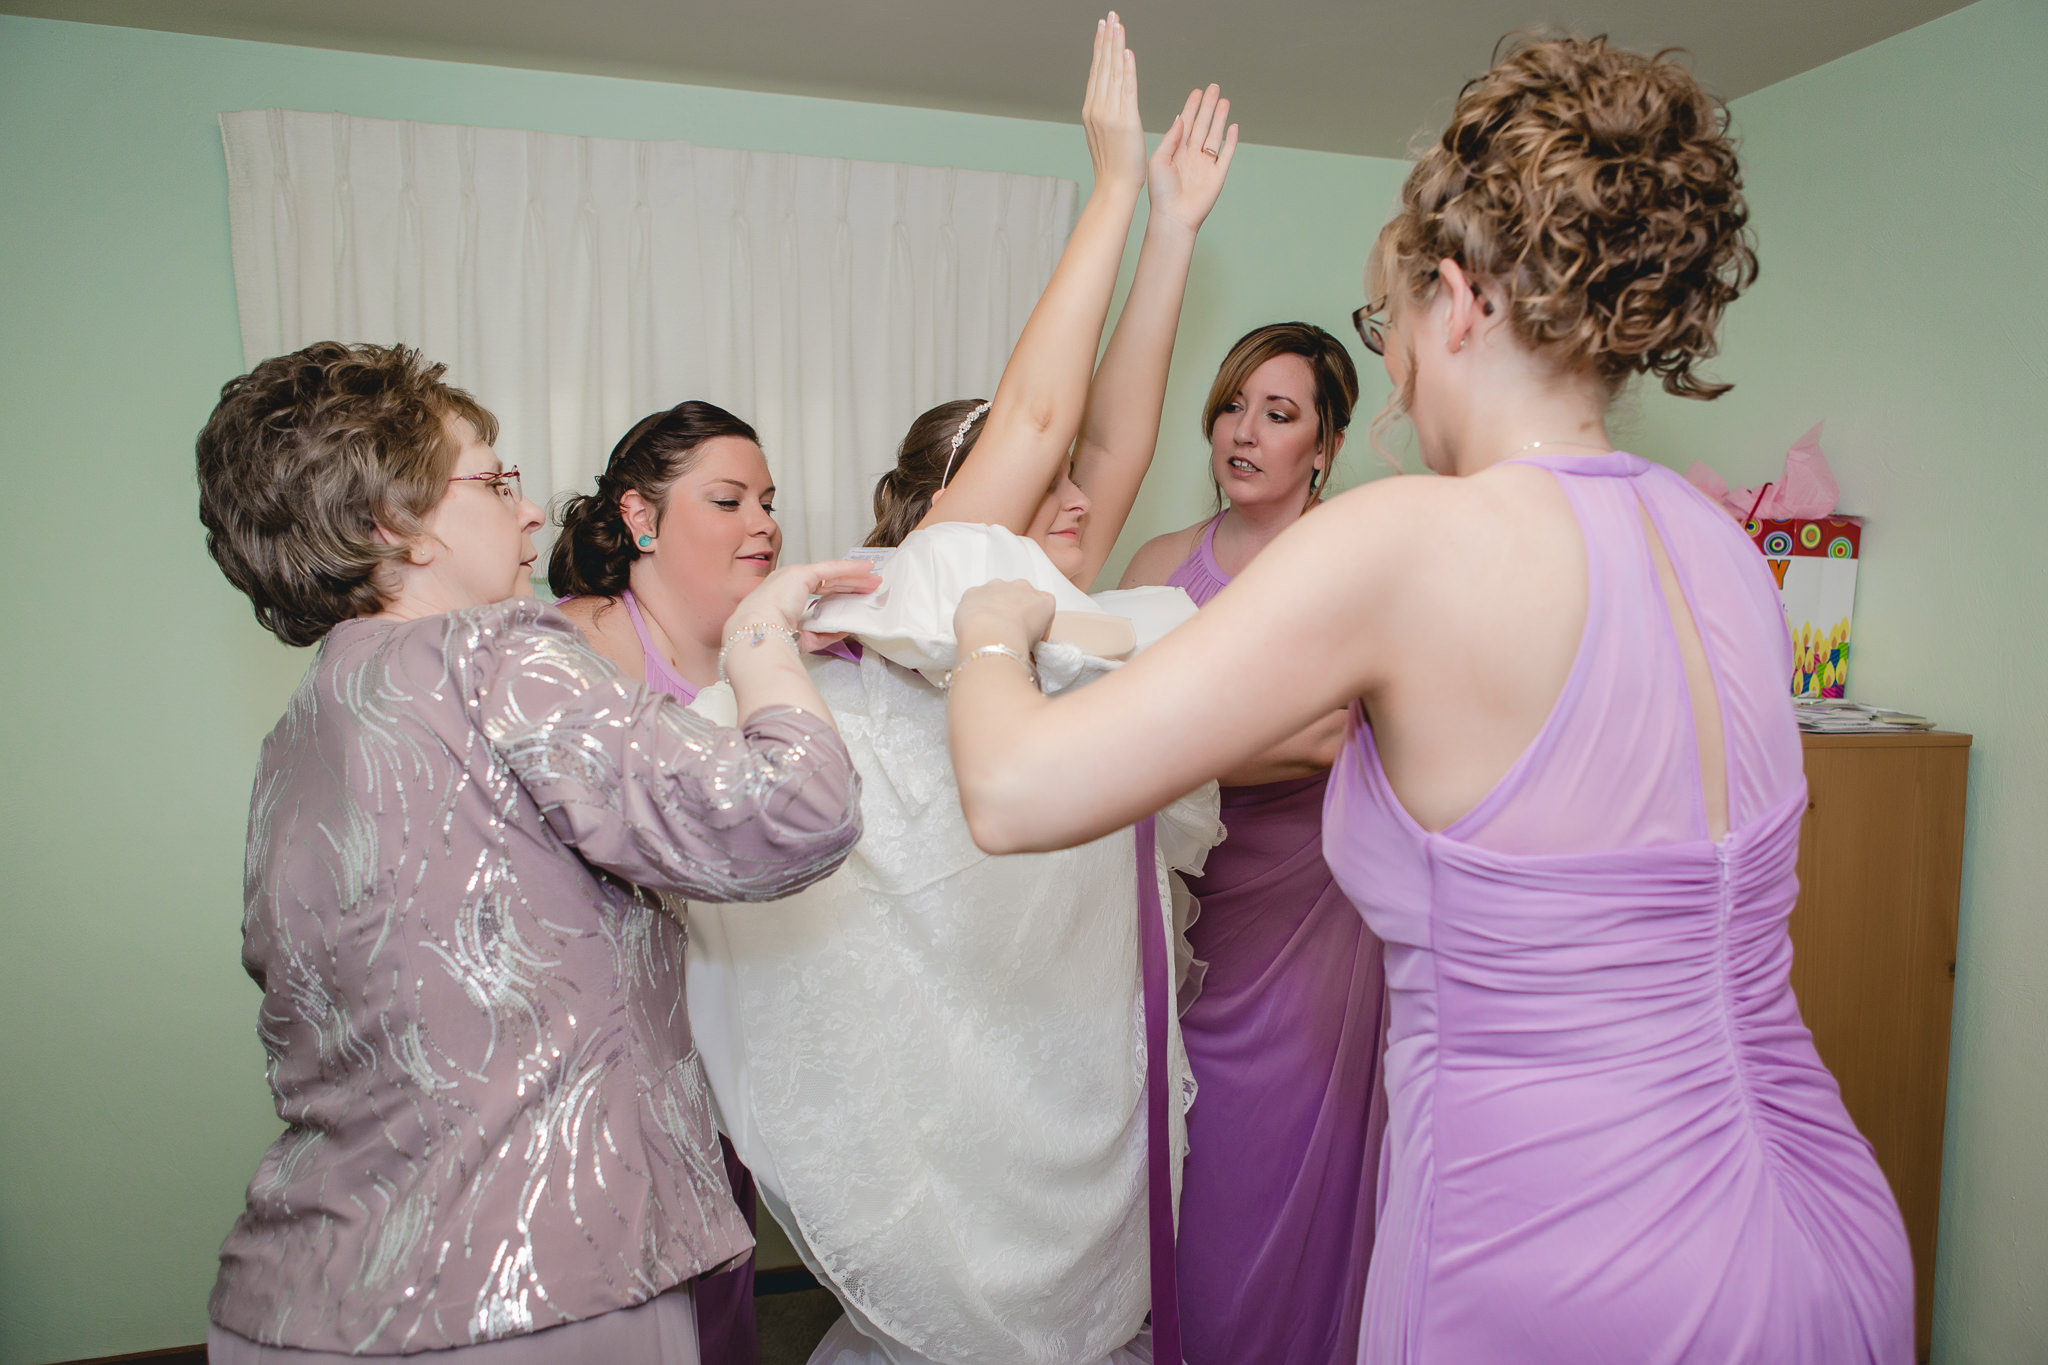 Mother of the bride and bridesmaids helping the bride into her wedding dress